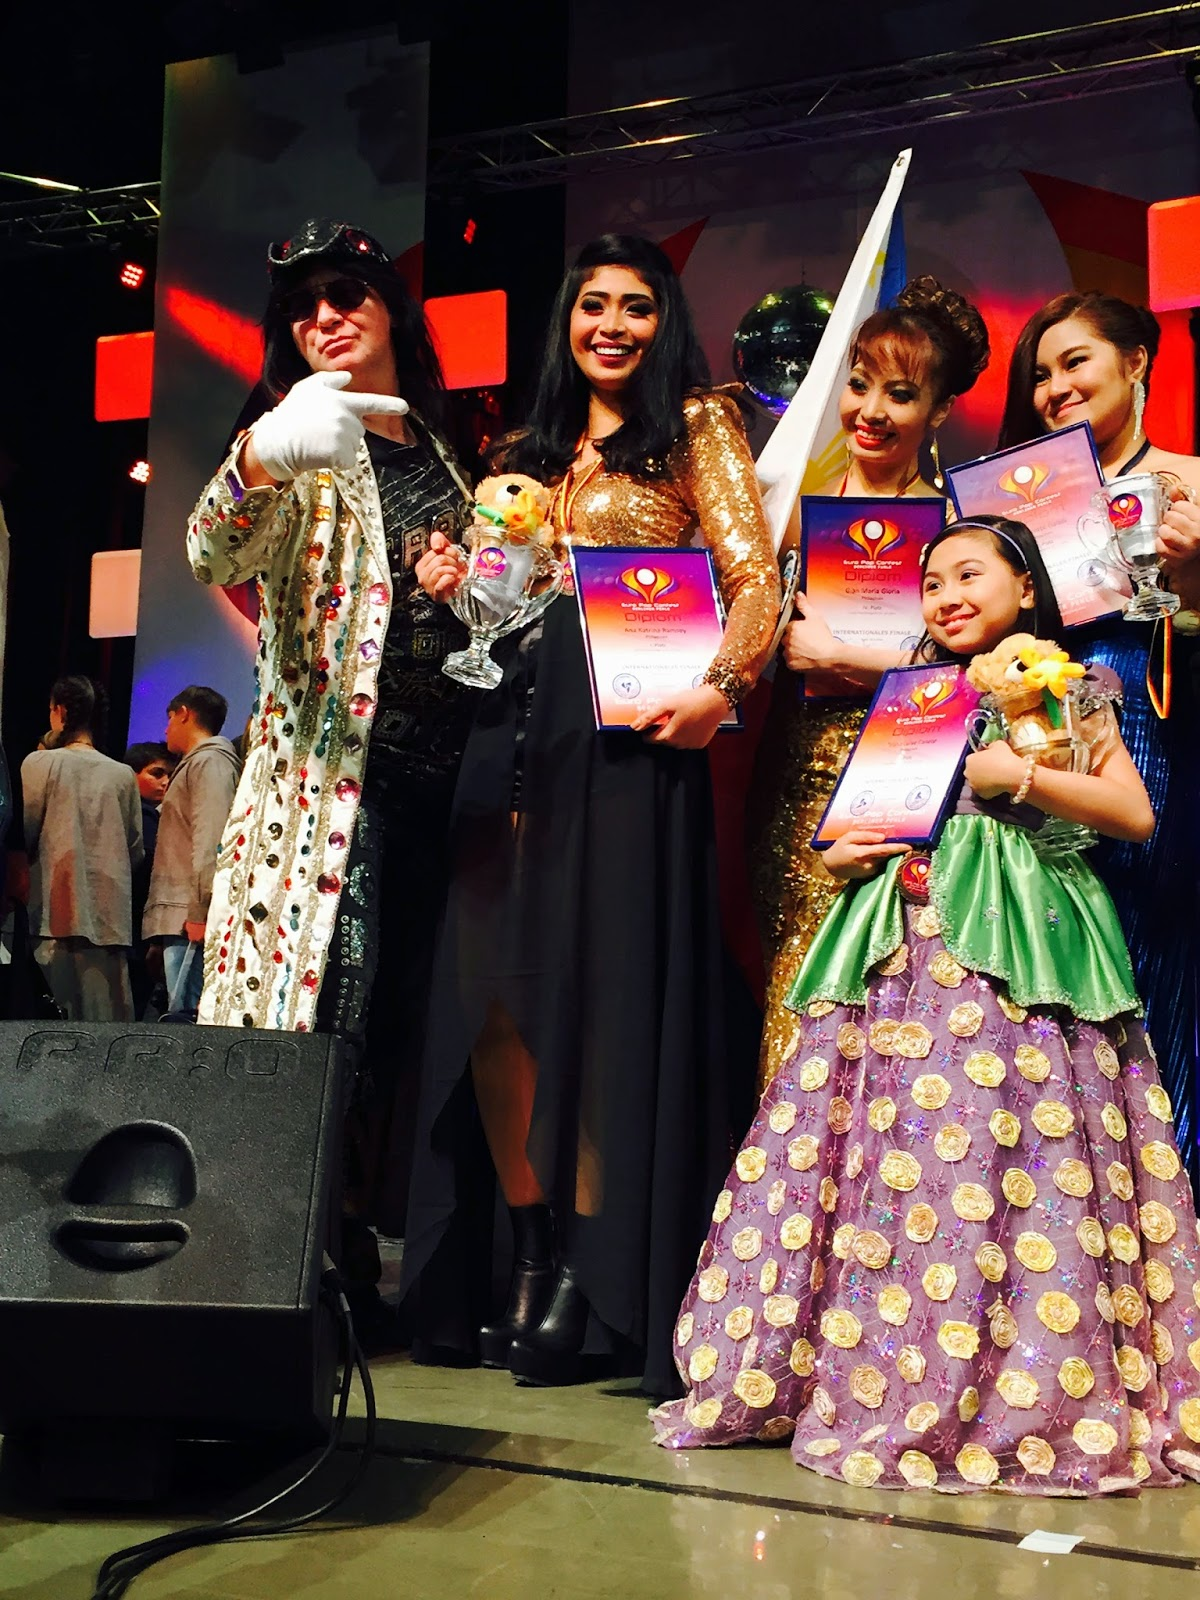 Goin' Bulilit star Chacha Cañete wins 2nd Place in Europop 2014 Berlin